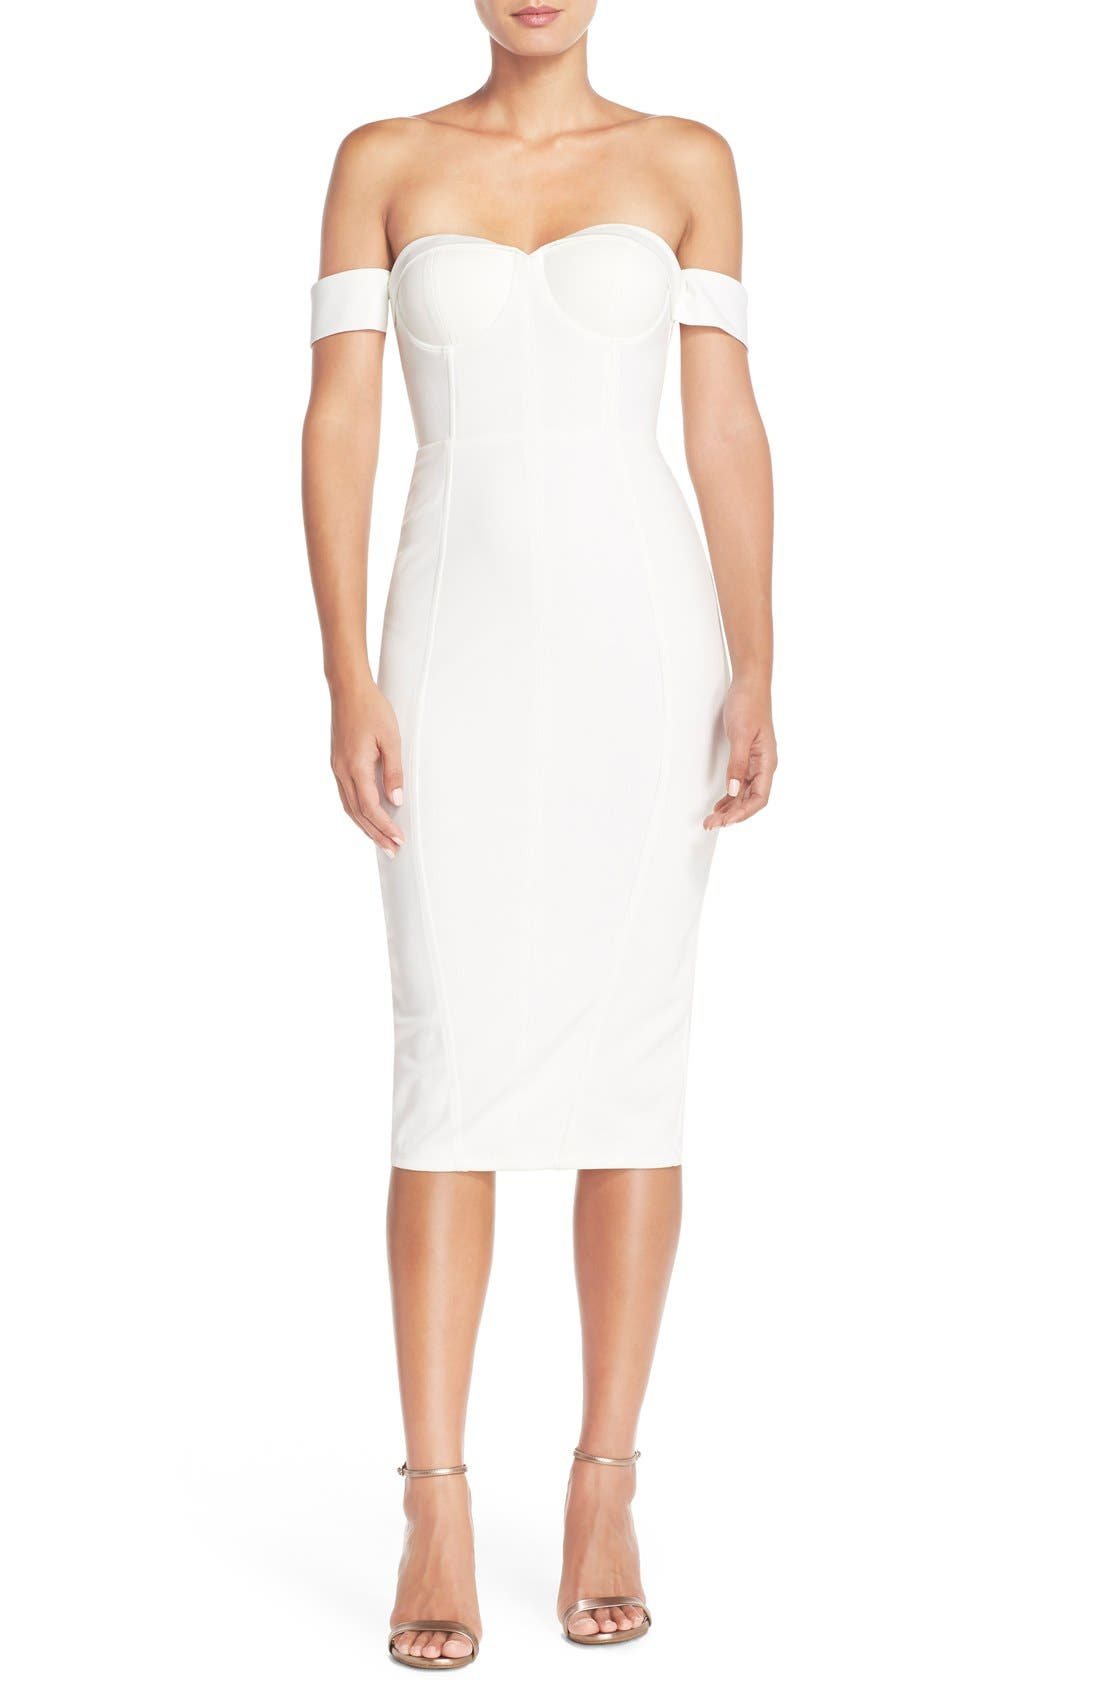 MishaCollection 'Chloe' Off the Shoulder Stretch Midi Dress,                             Main thumbnail 1, color,                             901